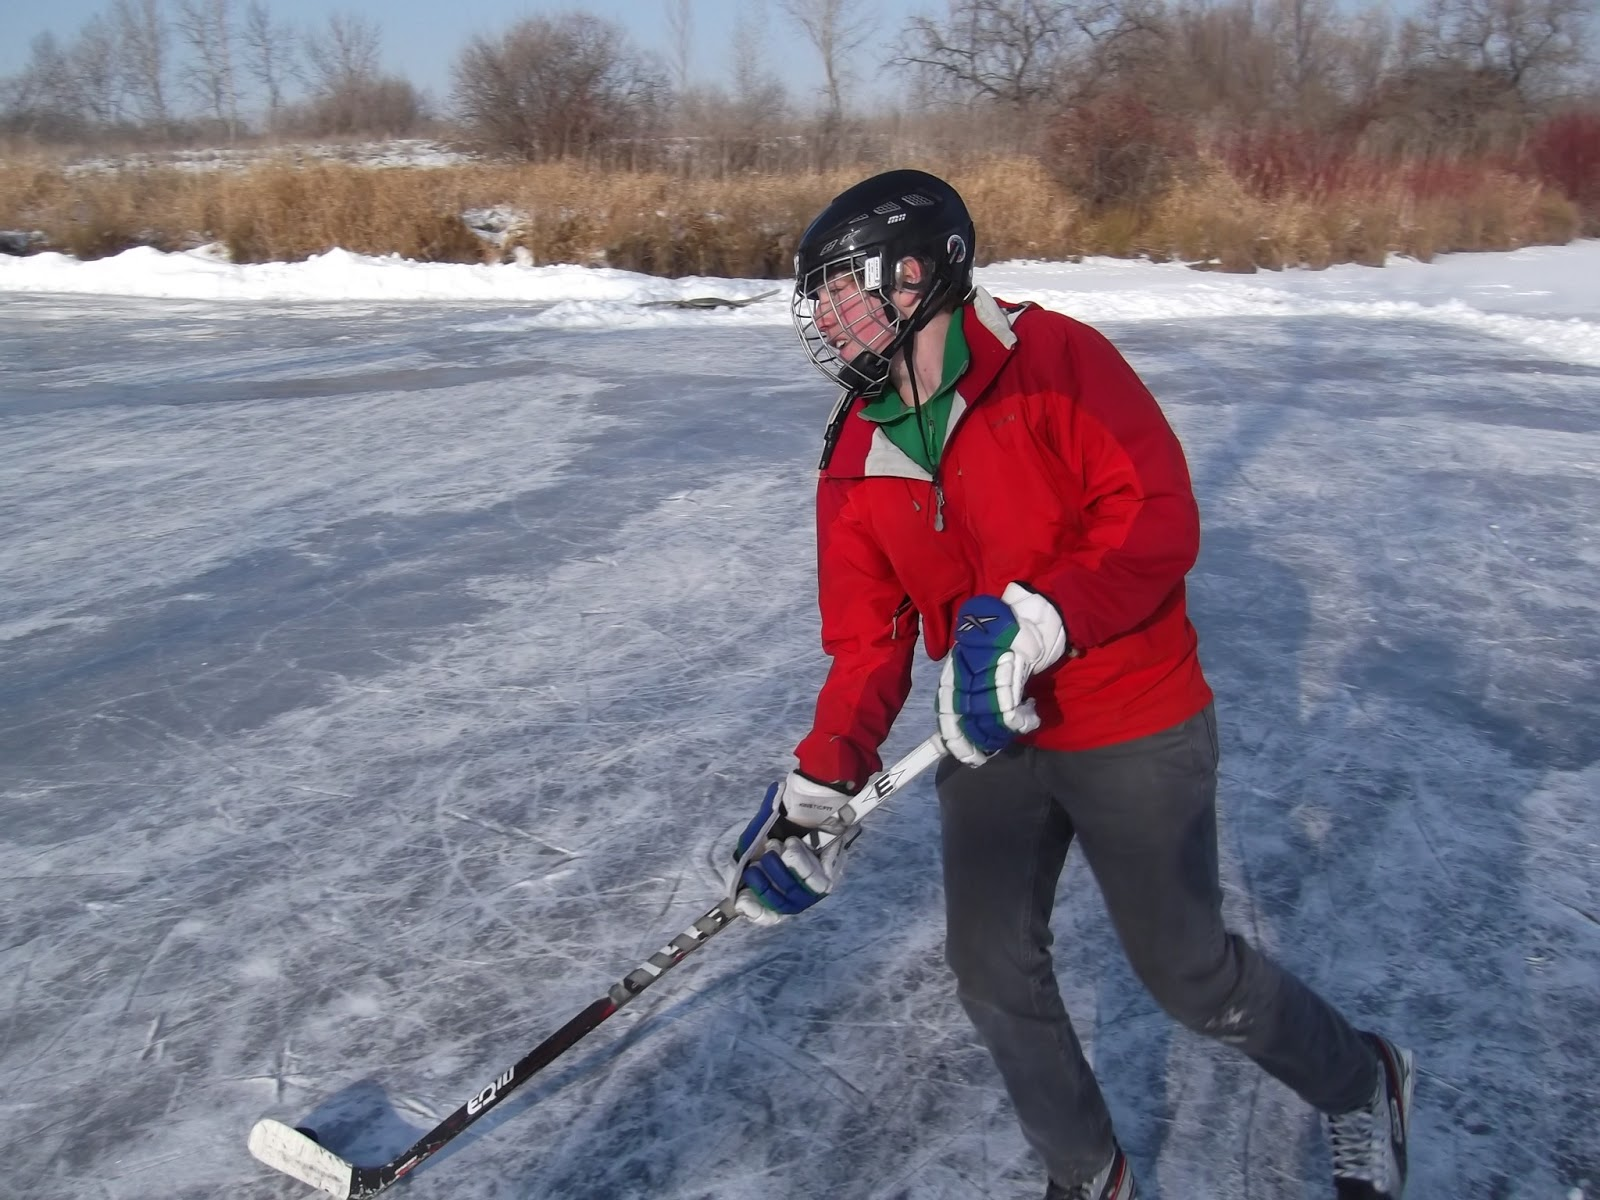 The oldest son, Christian, playing hockey on the ice rink